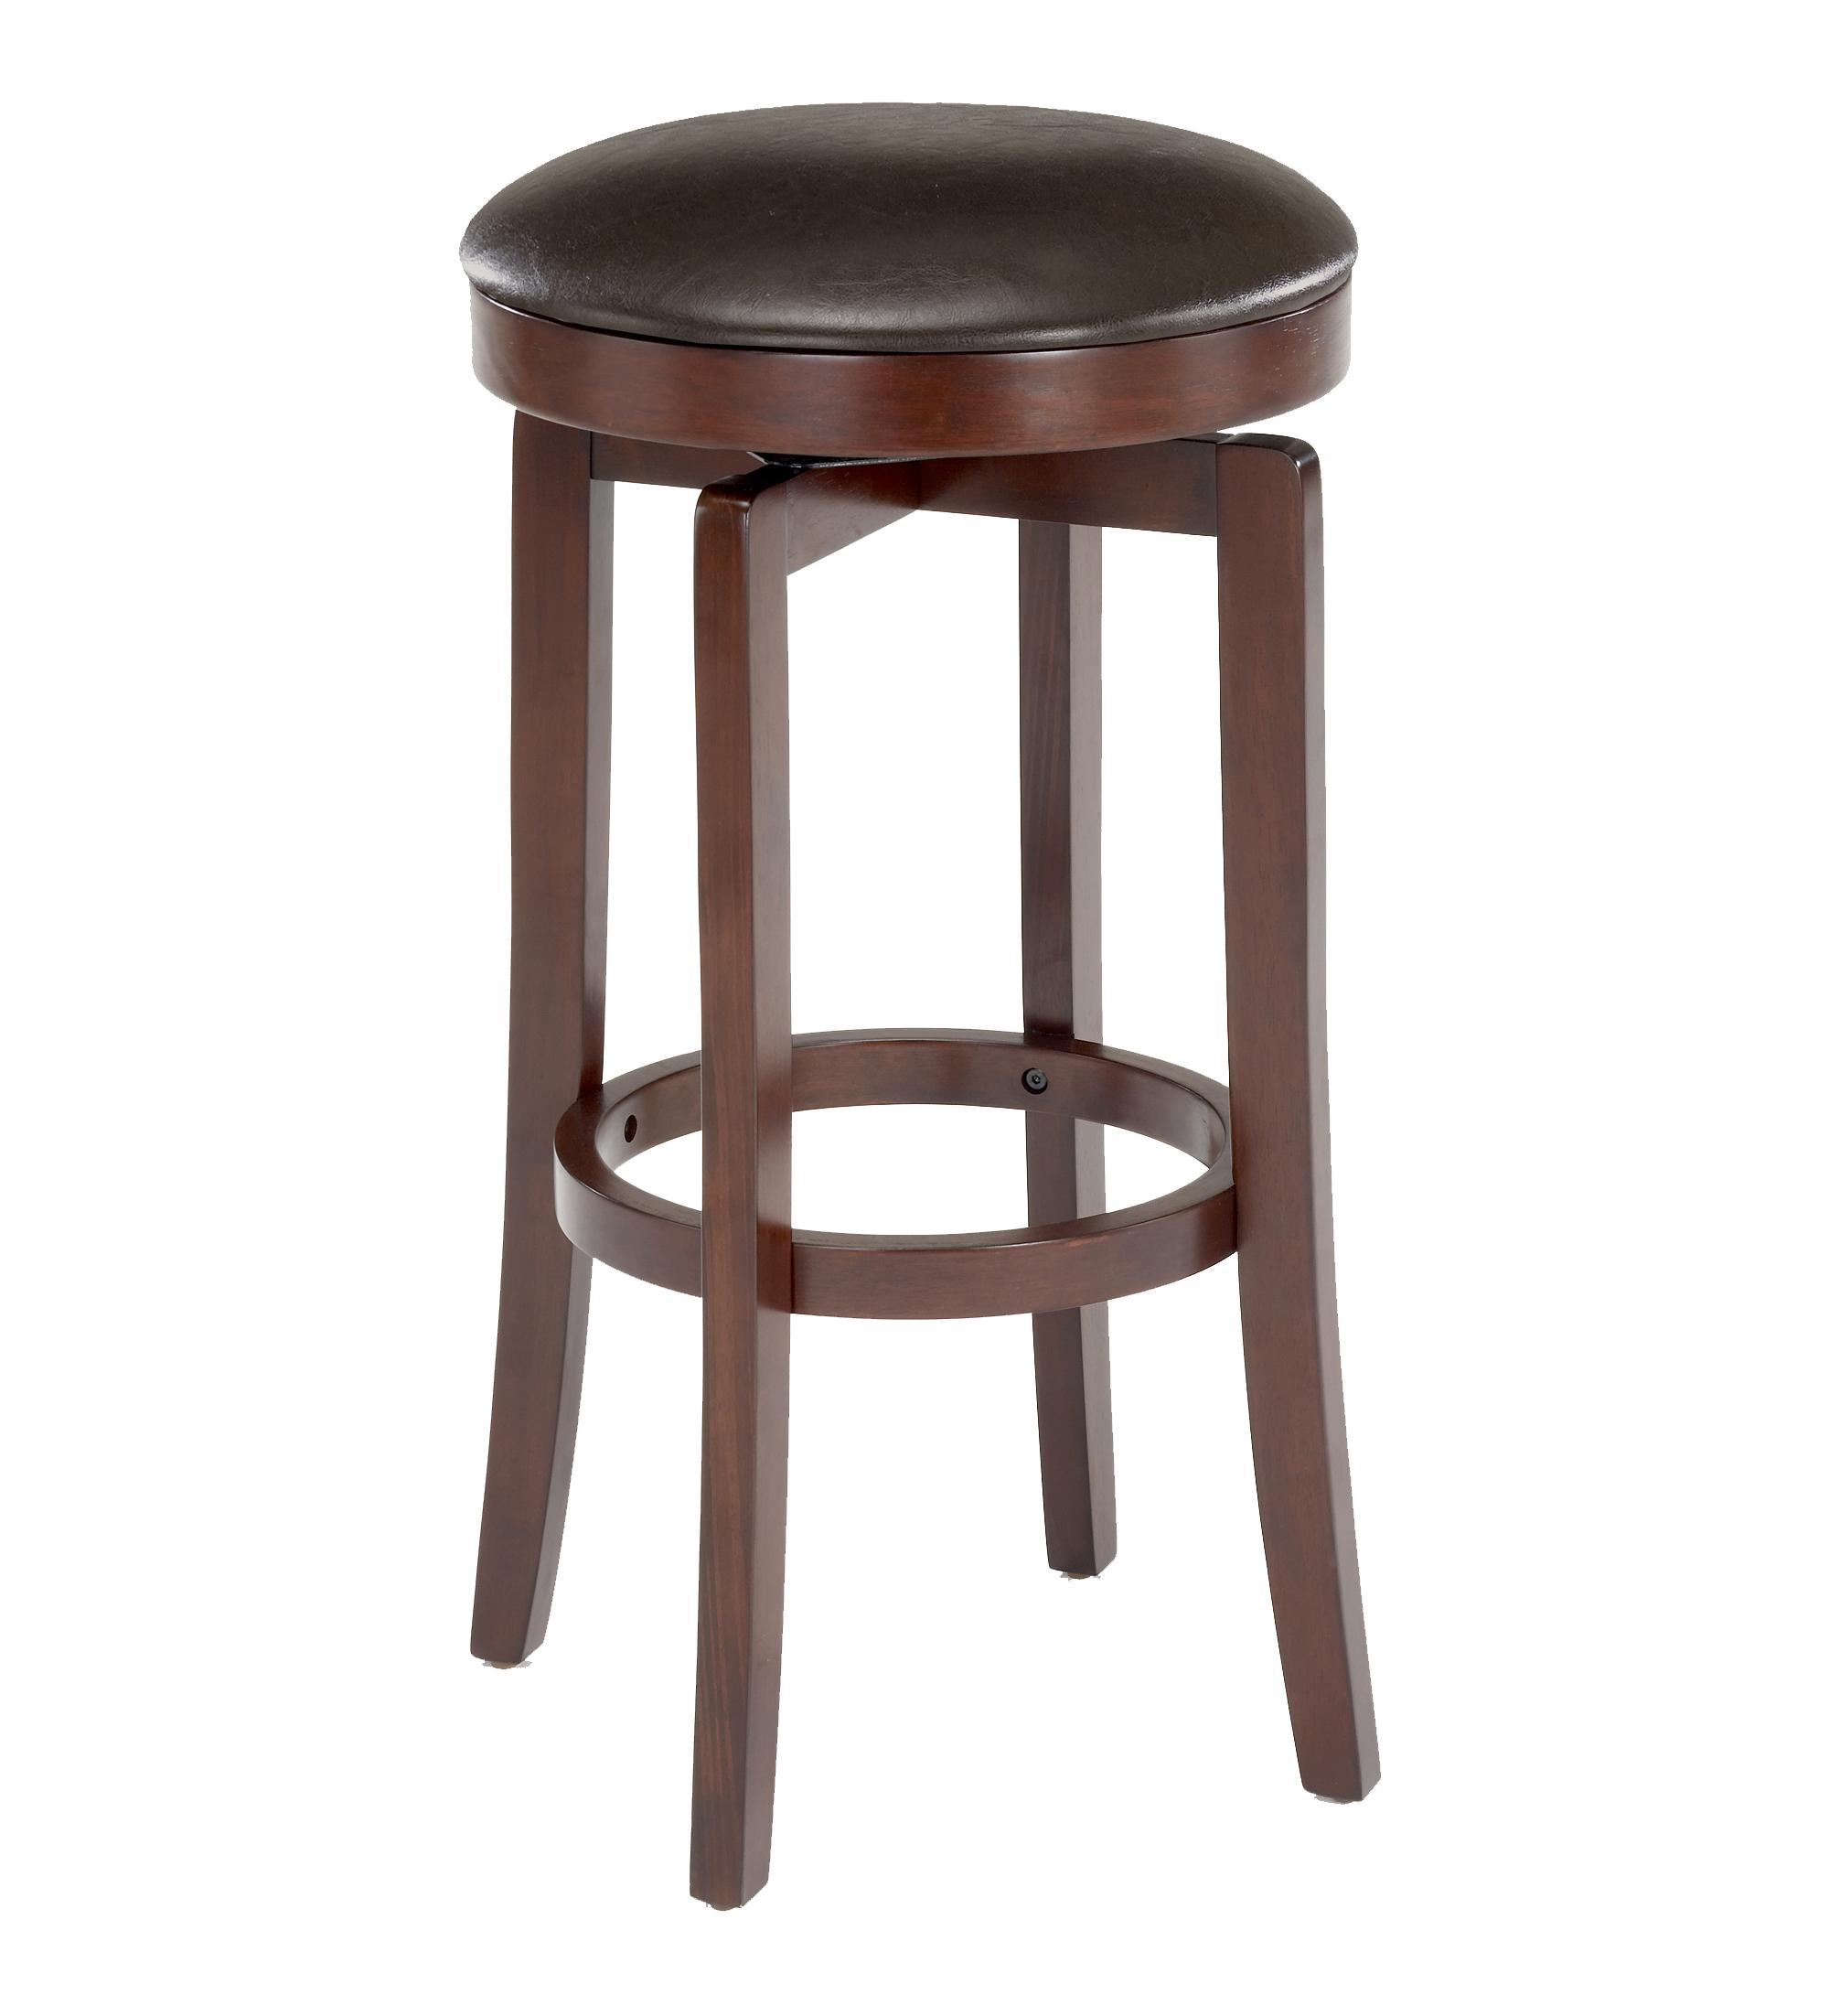 Bright Colored Bar Stools Hillsdale Backless Bar Stools 63455 826 25 Quot Malone